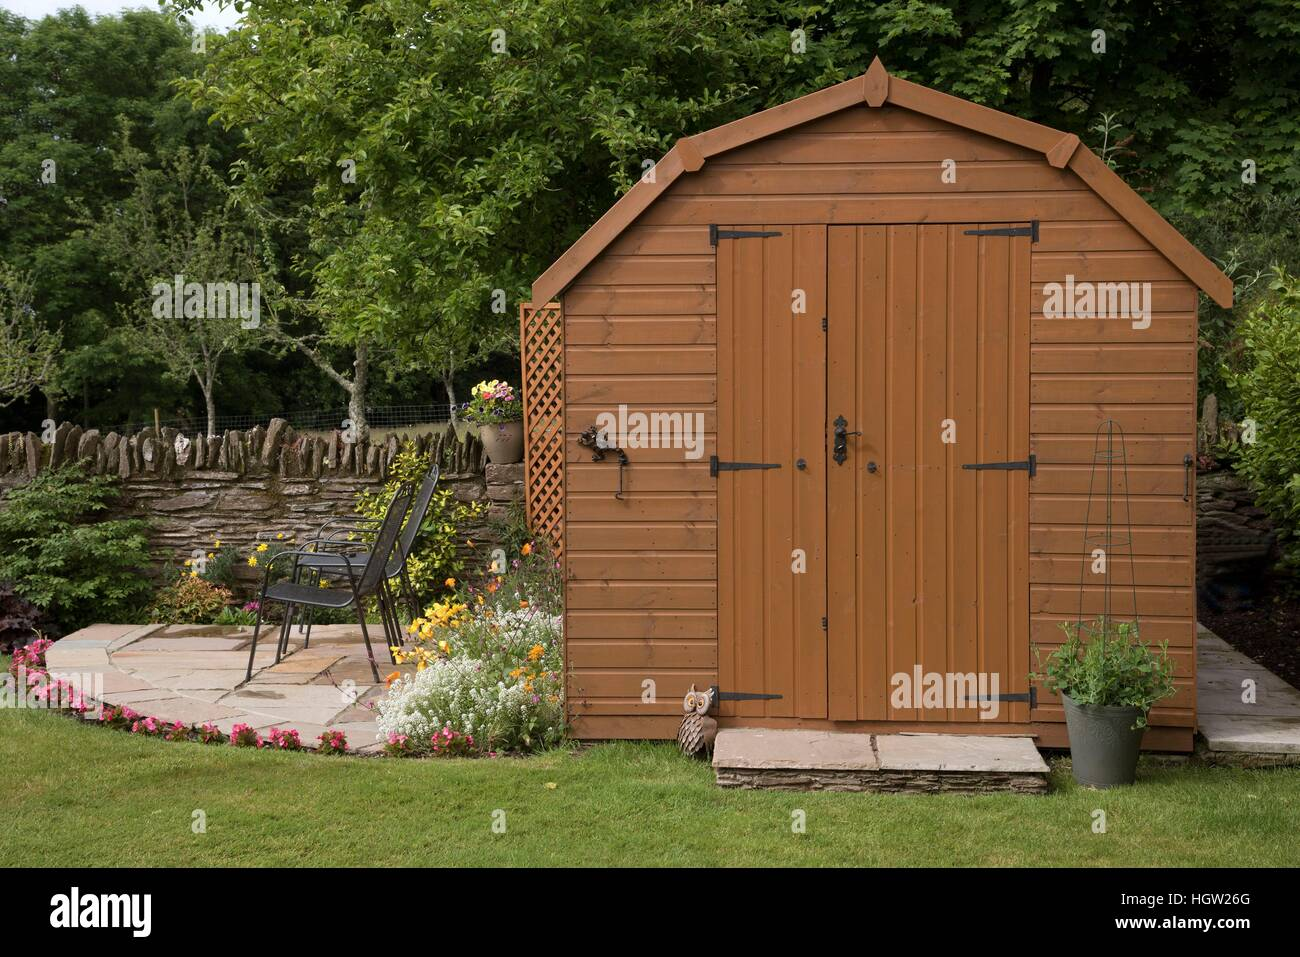 Devon England Uk, Barn Style Garden Shed With A Small Patio And ...